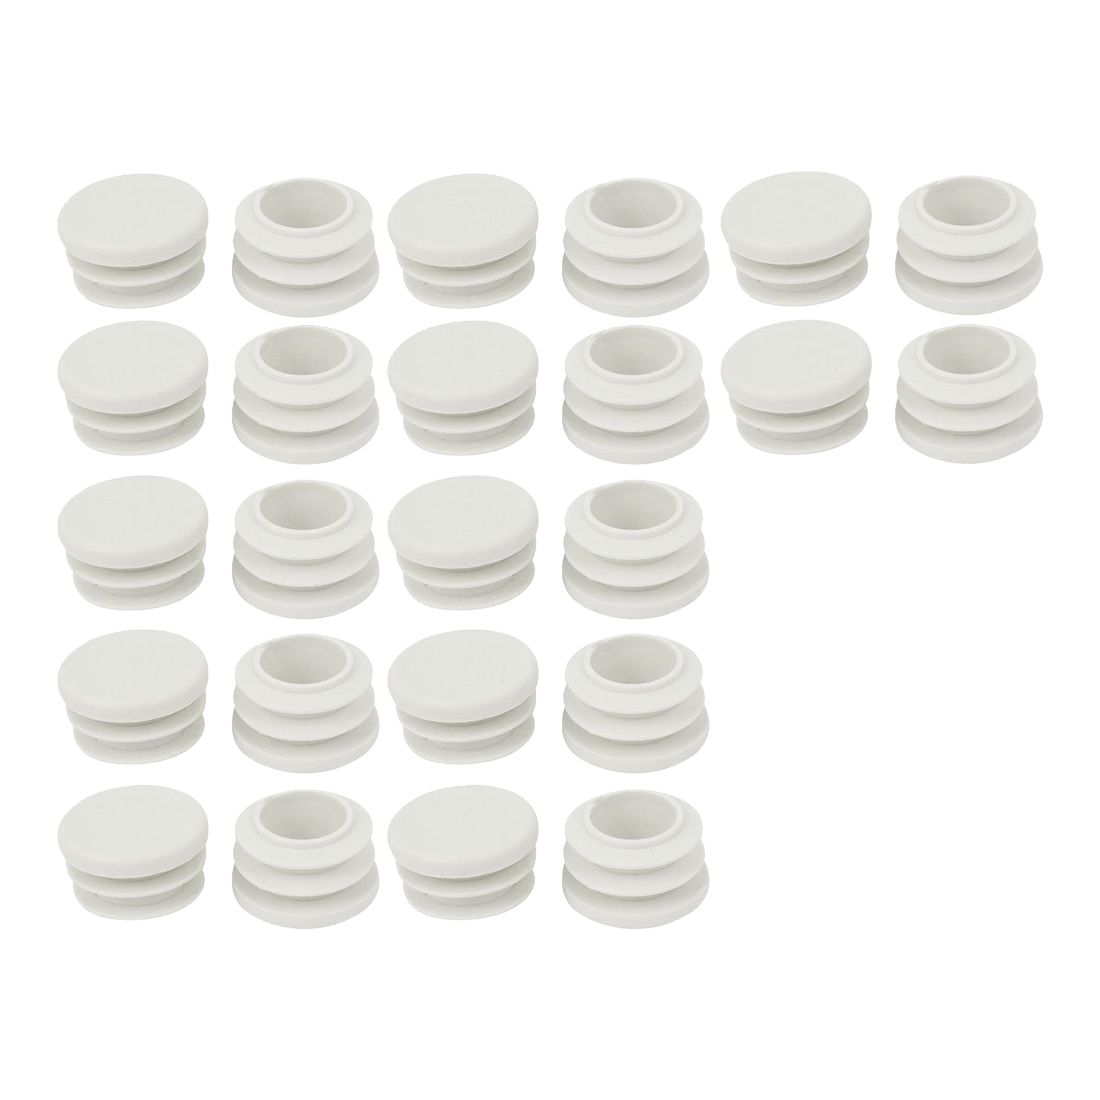 Promotion! 18mm Diameter Plastic White Plug Caps Inserts For Tubes Cap 24 Pieces